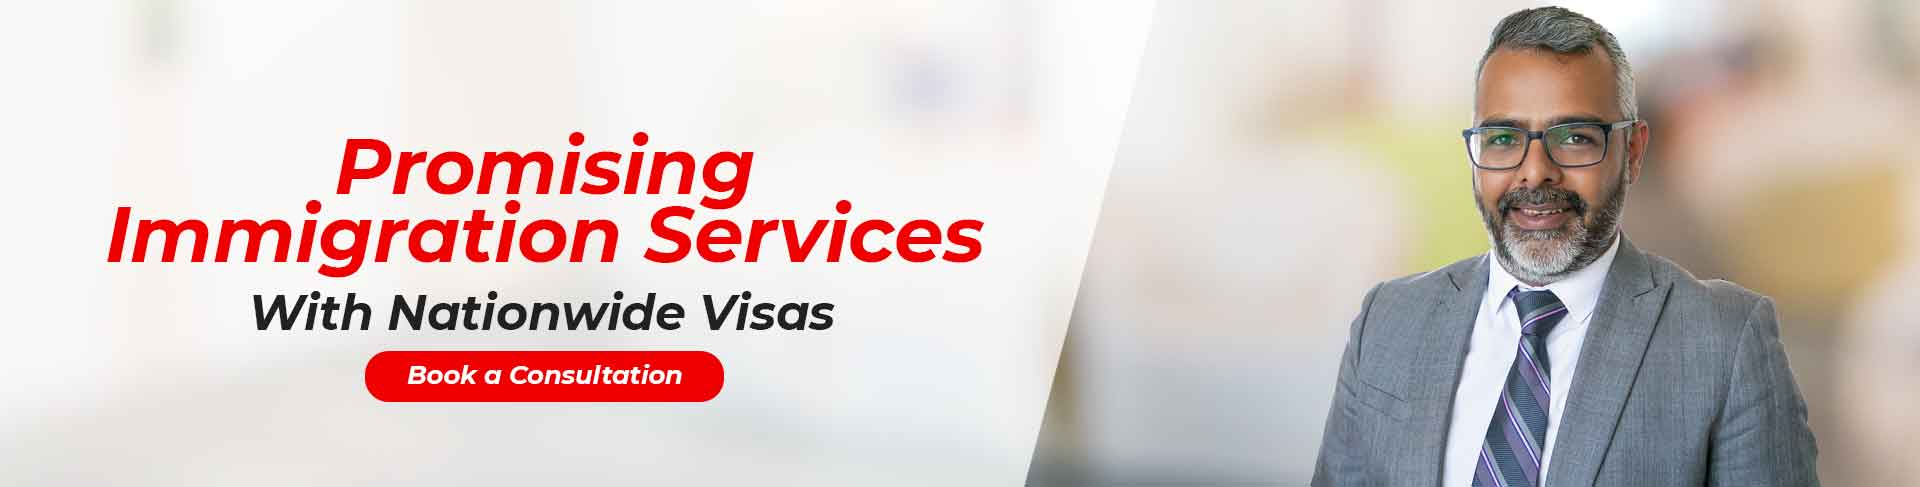 Homepage-Banner-New-Immigration-Services